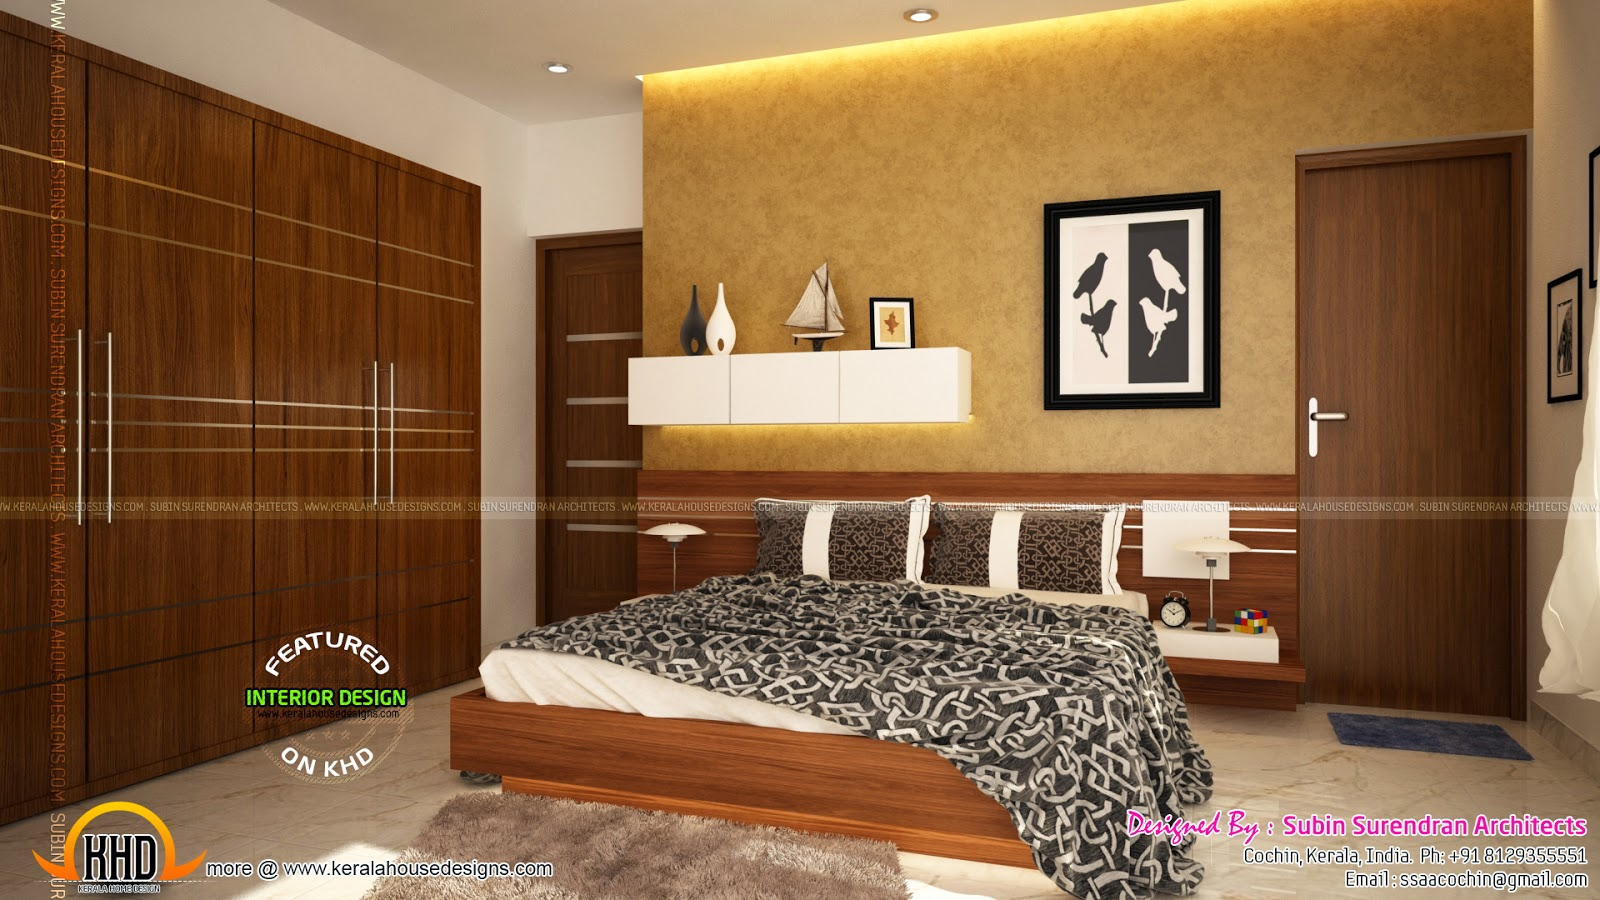 Interior design cochin kerala home design and floor plans for Master bedroom interior